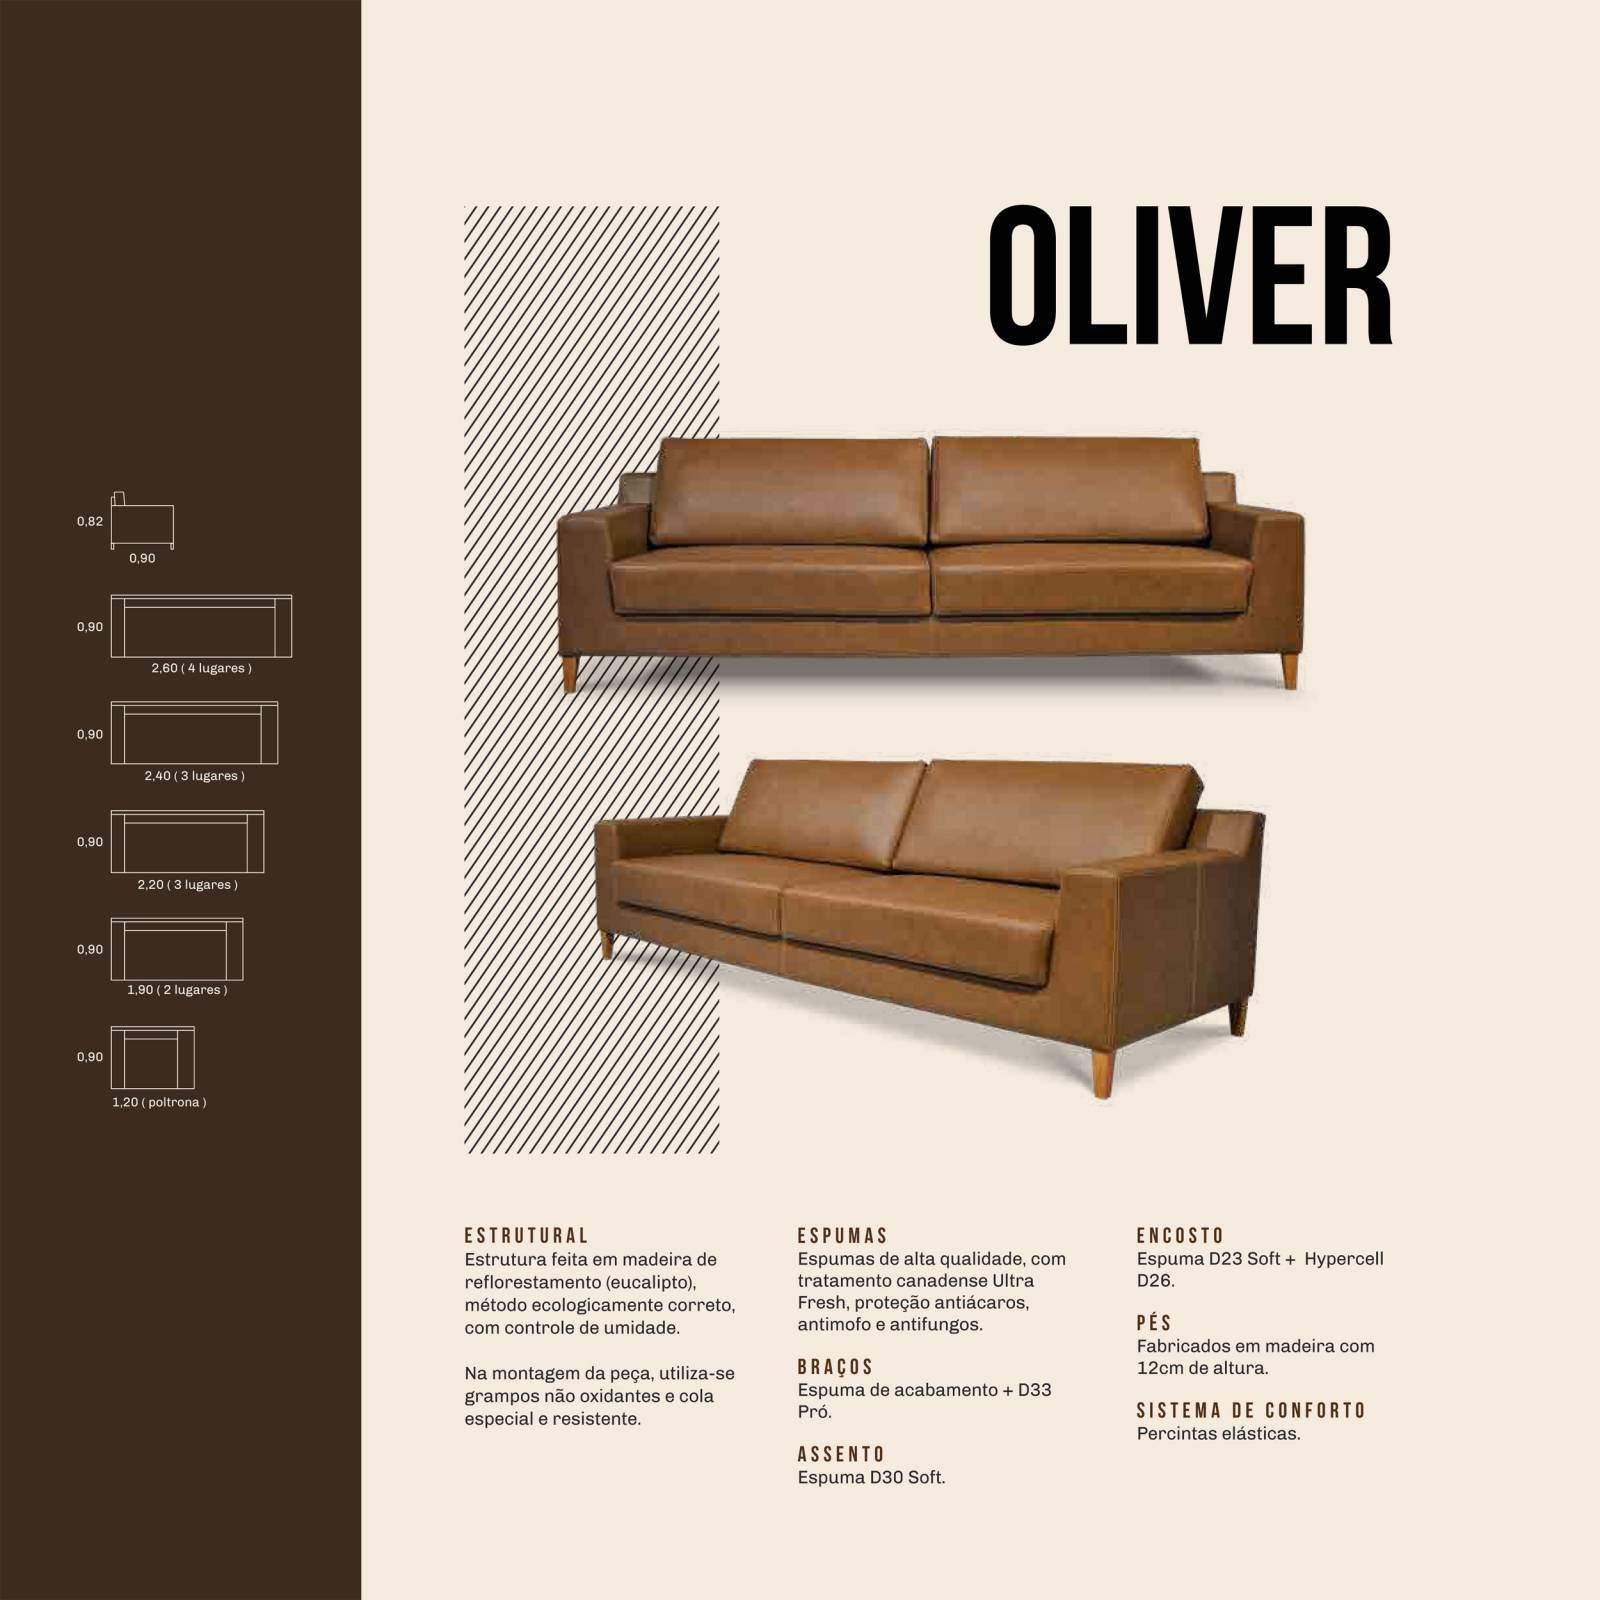 Estofado Oliver Mannes - All Home